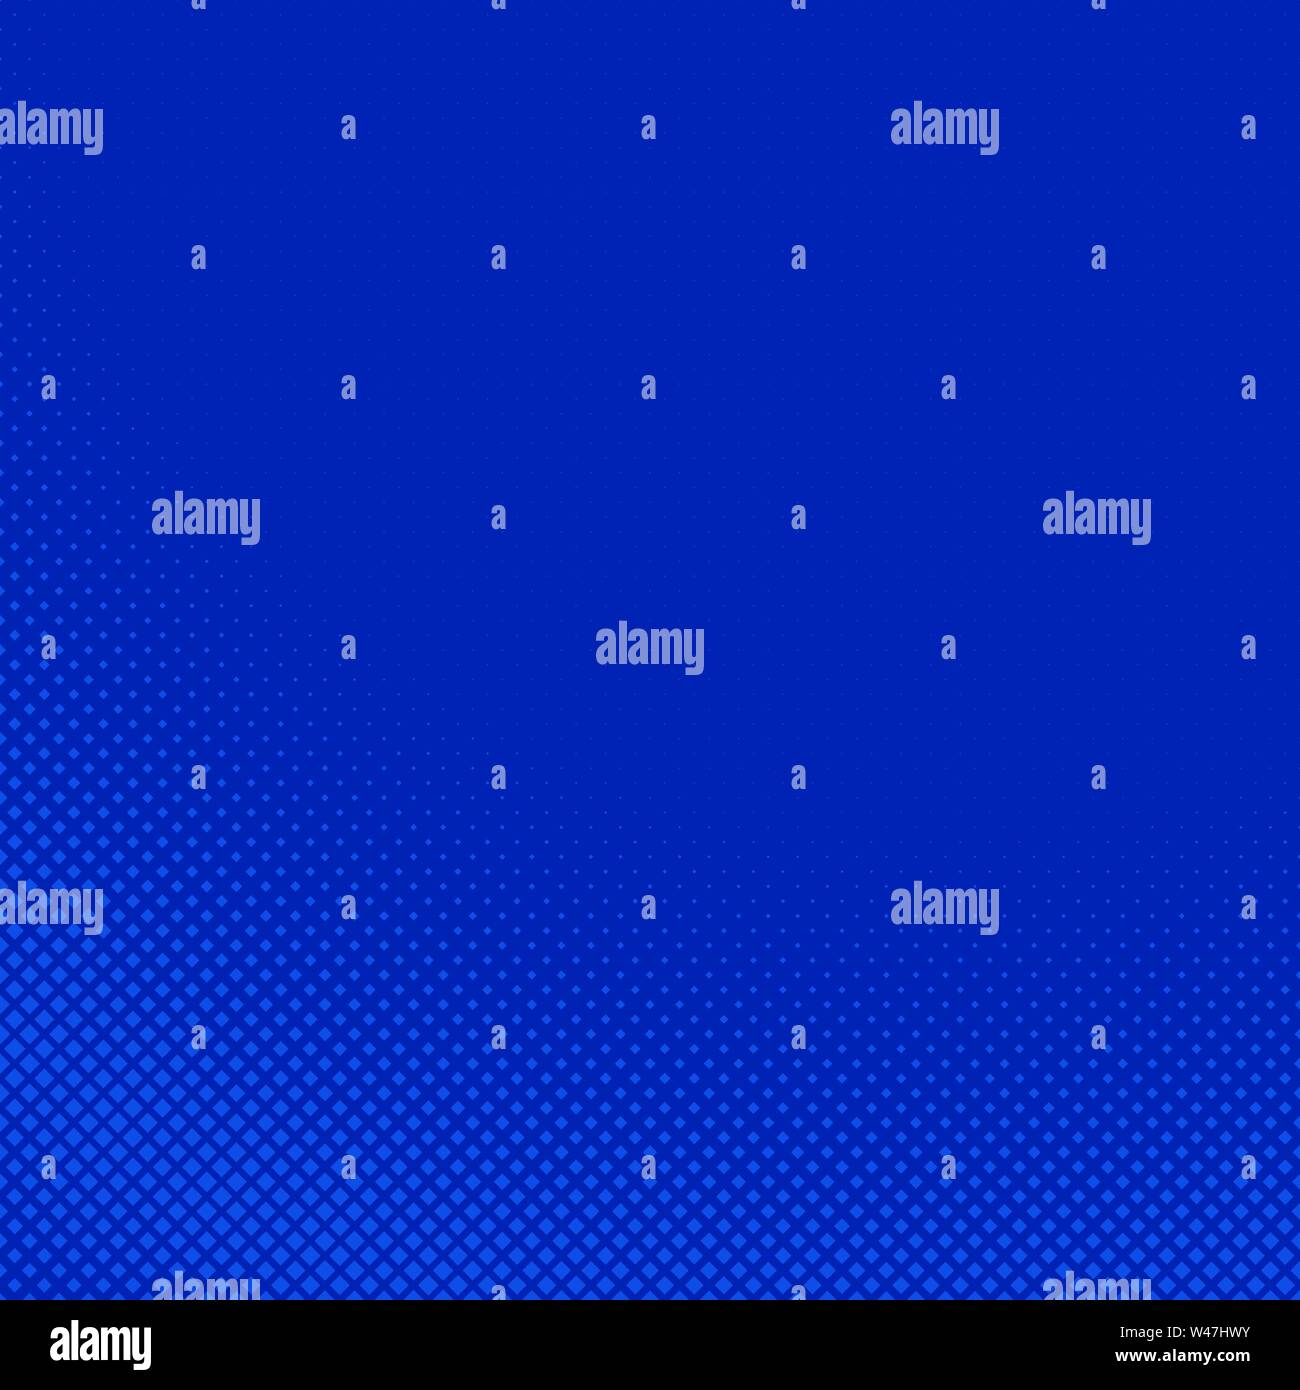 Blue abstract halftone square pattern background - vector graphic design - Stock Image